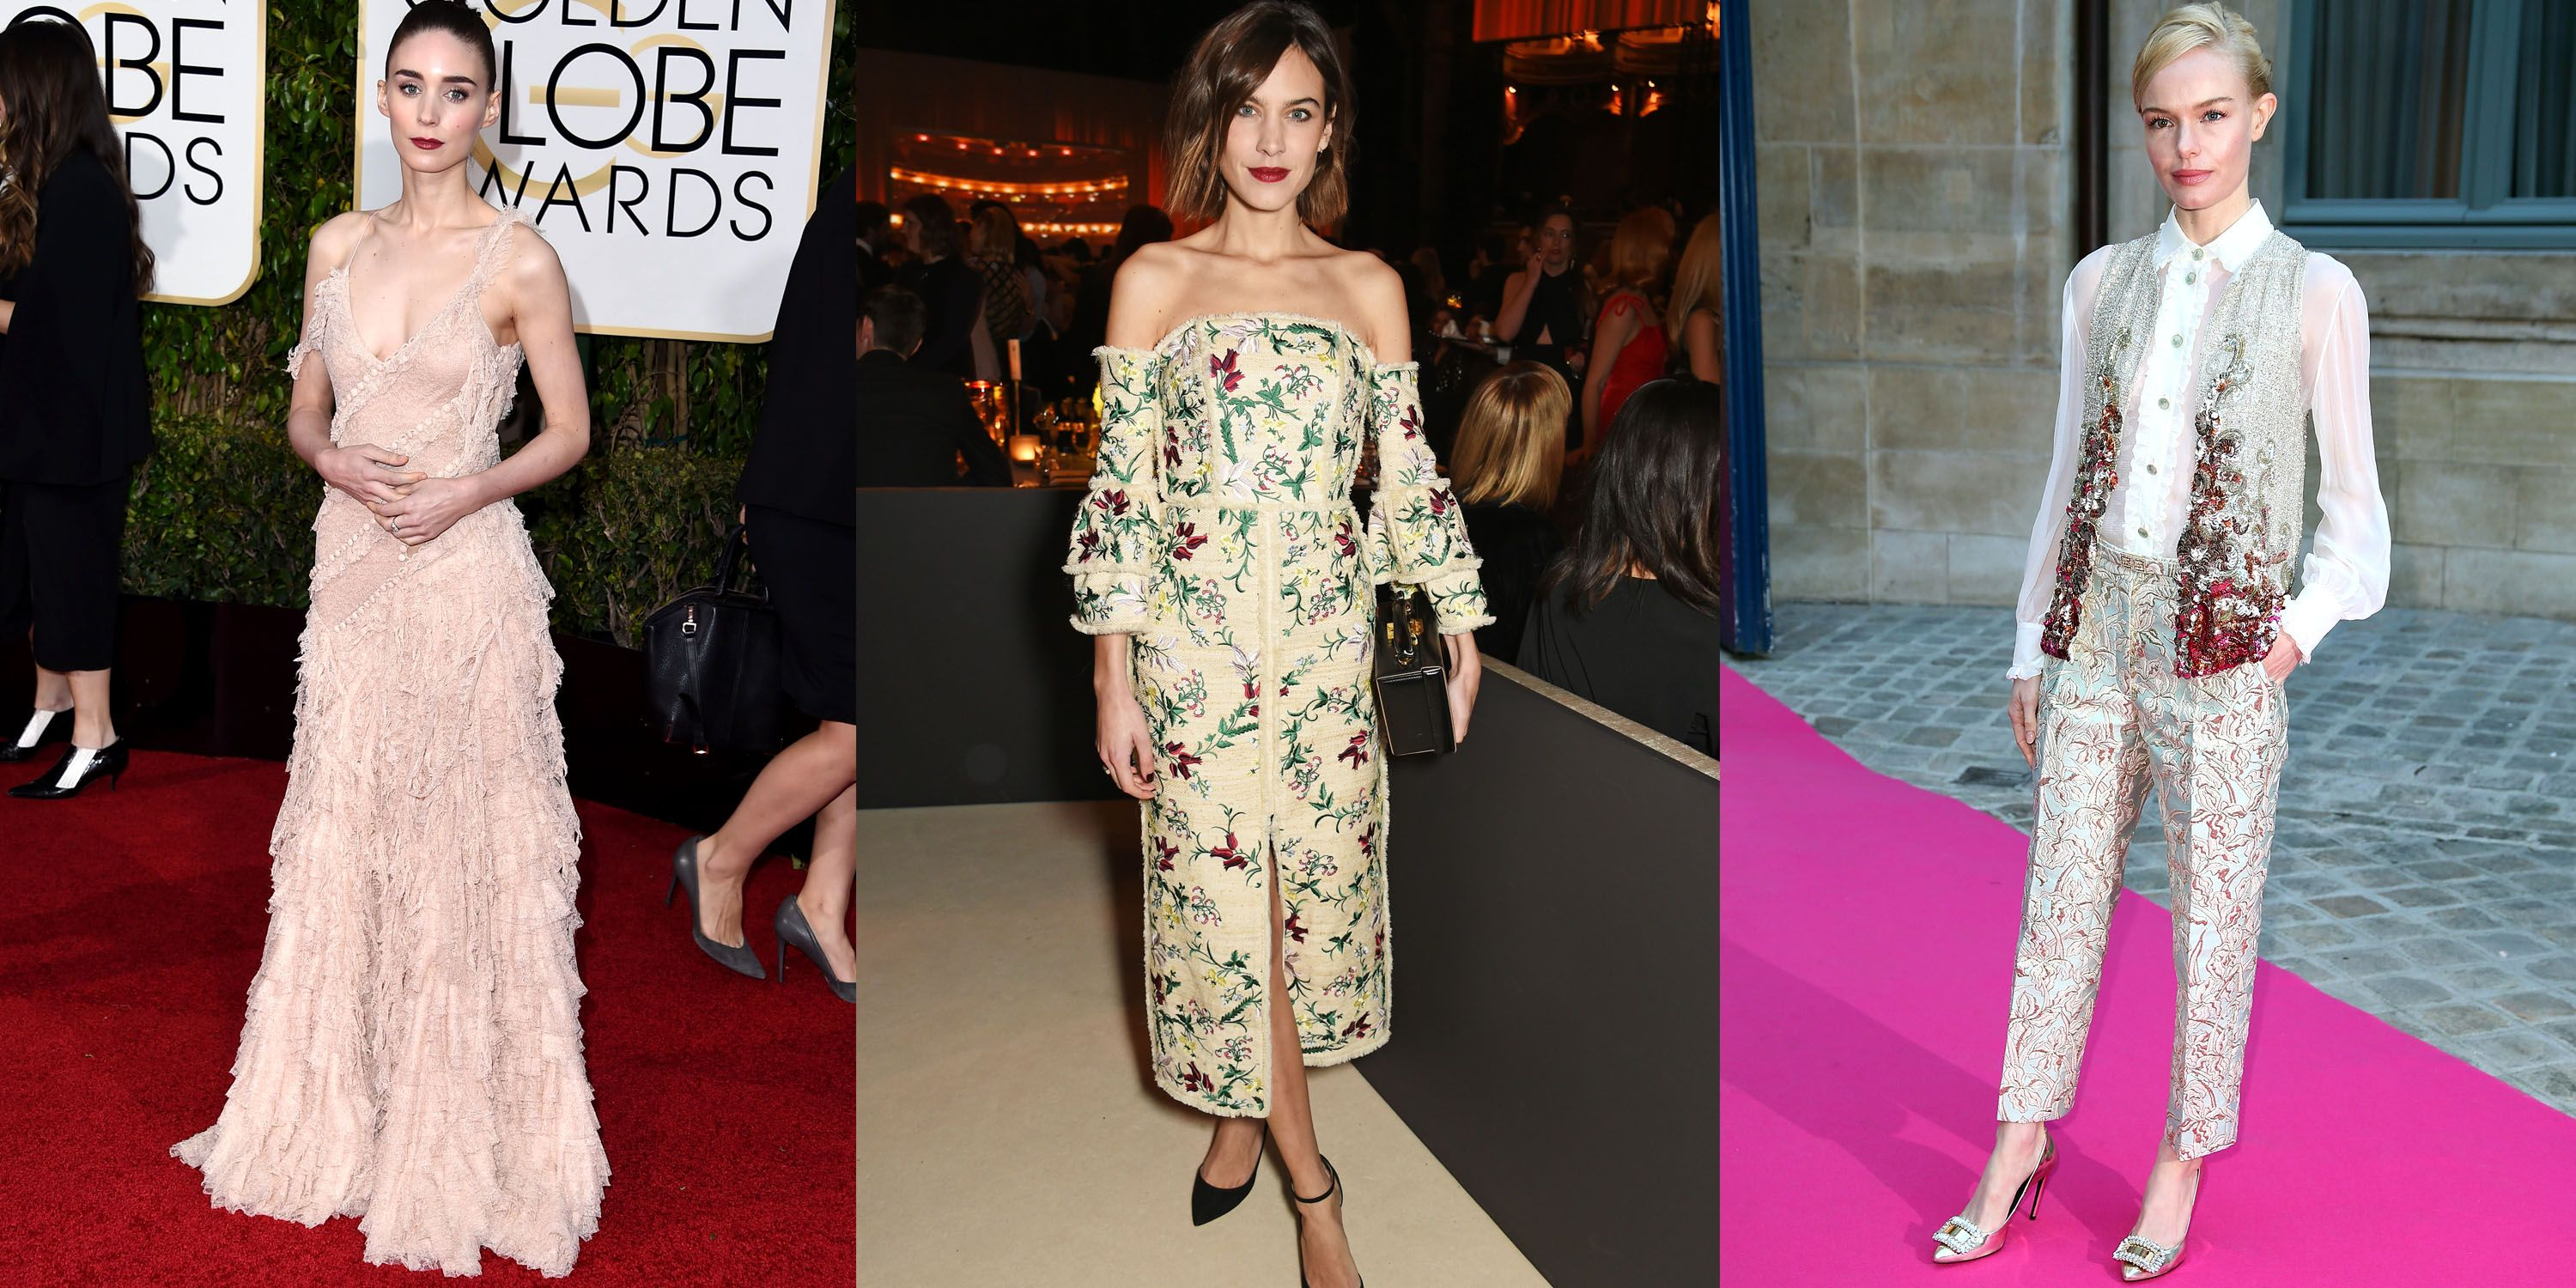 <p>Pastels, florals, and beading for days—the red carpet is looking ladylike. Meet the muses: Rooney Mara, Alexa Chung and Kate Bosworth.</p>